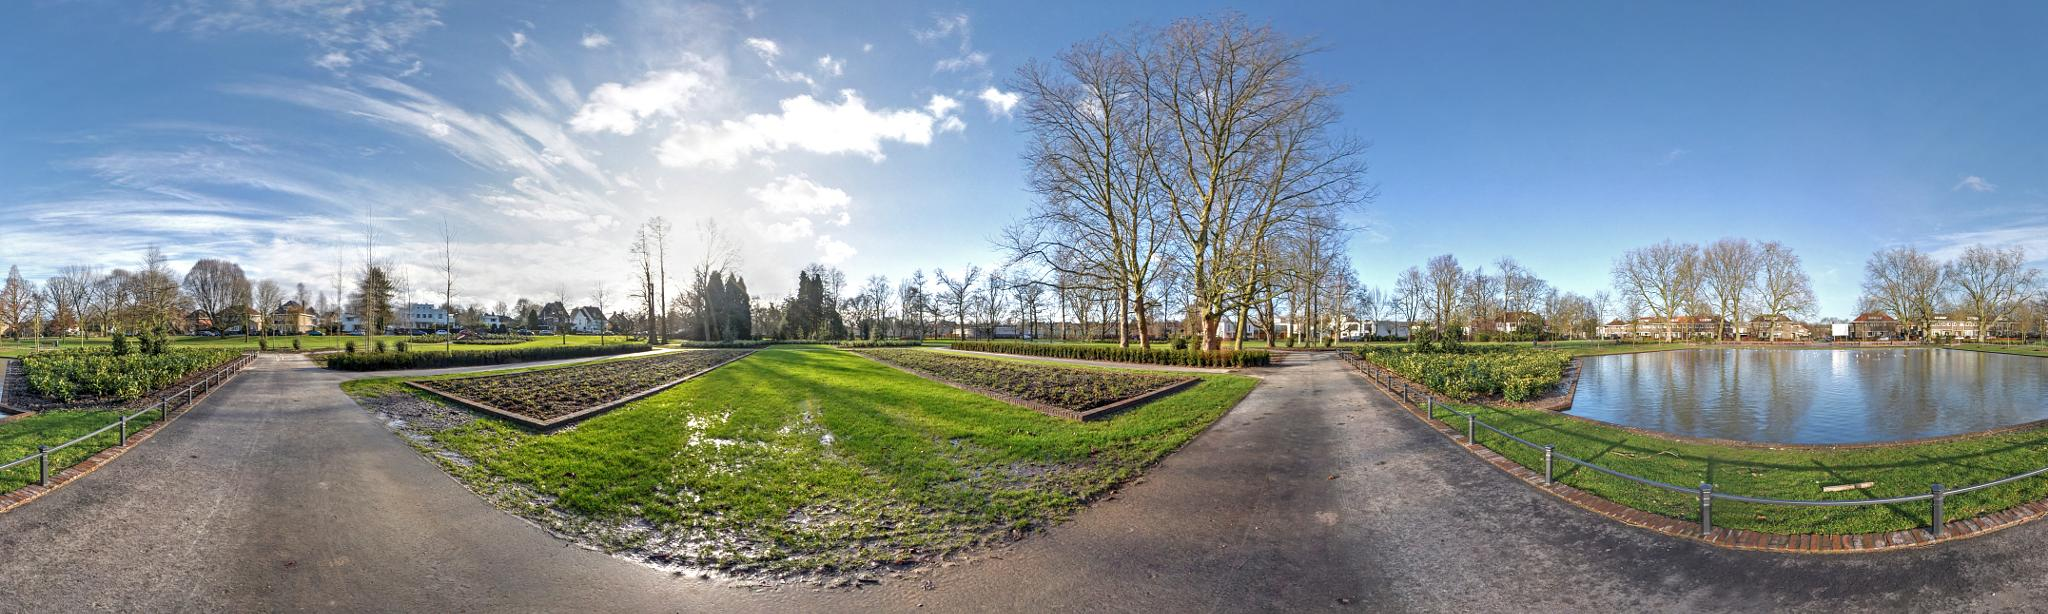 360view City park by marcelvankan